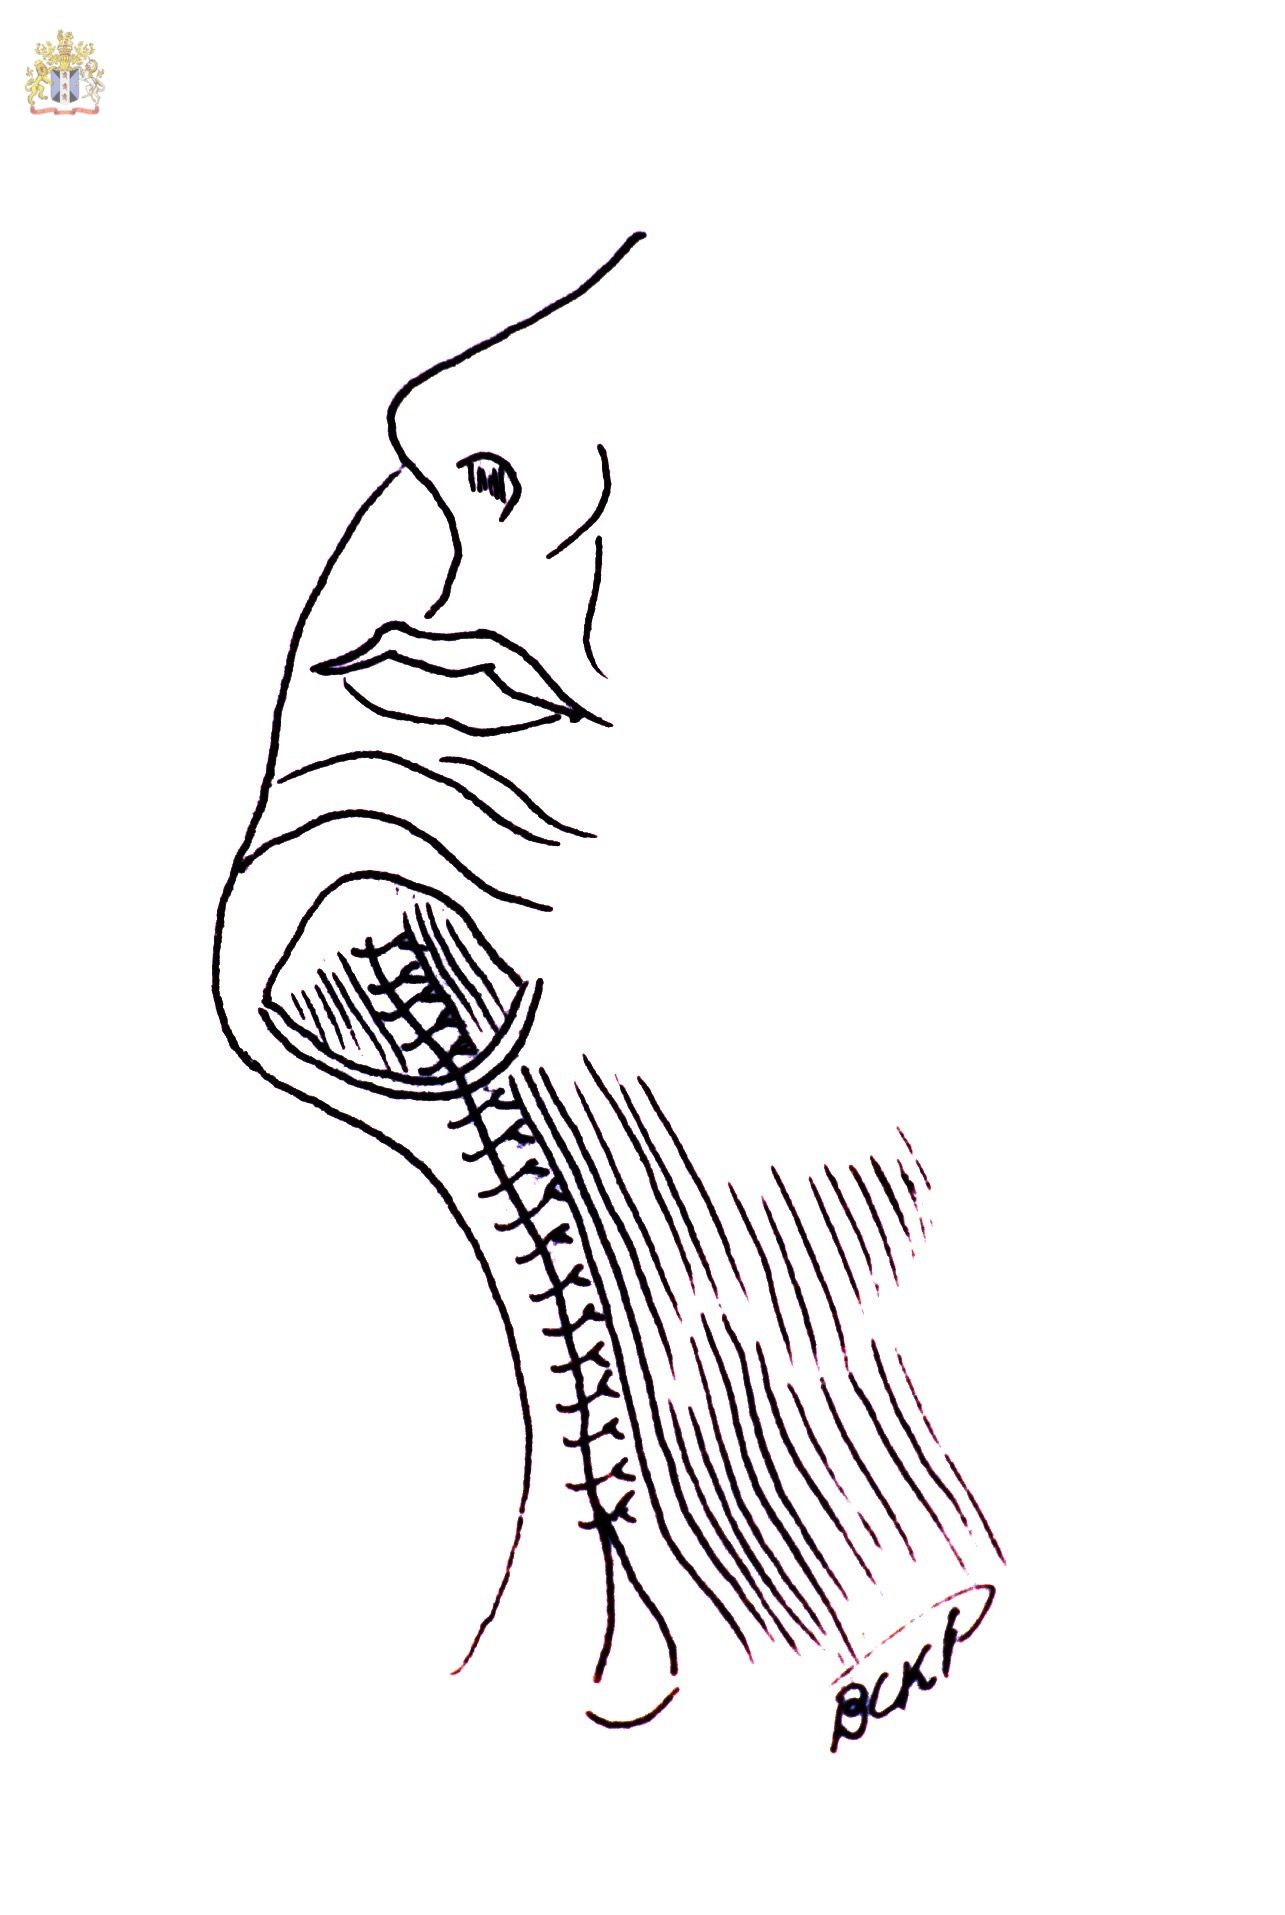 englishsurgeon.com Drawing shows how the platysma may be sutures to improve neckbands. BCK patel MD, FRCS, Salt Lake city